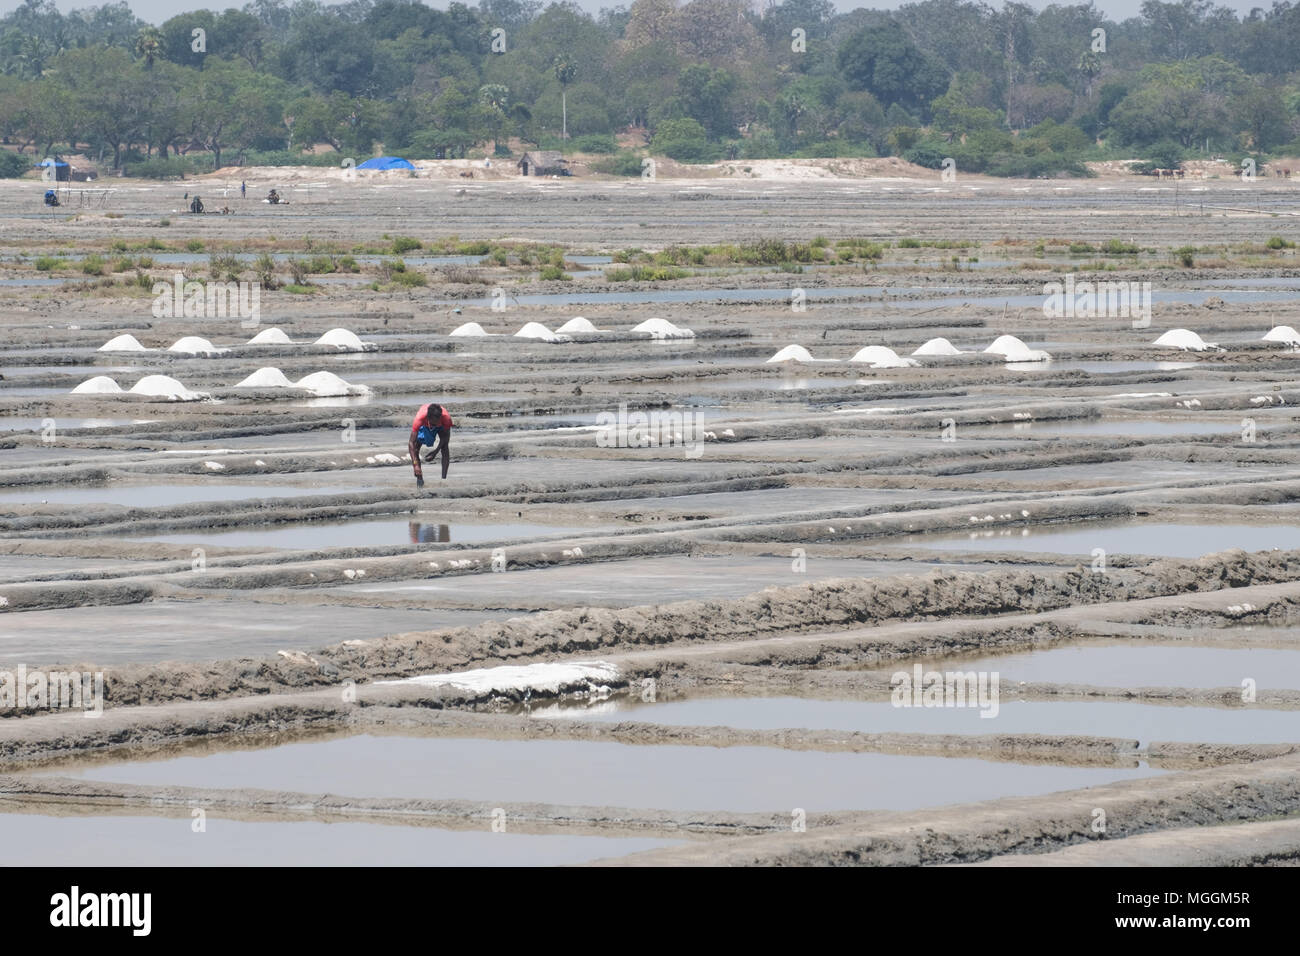 Villuppuram, India - March 18, 2018: Worker on the salt flats in the north of Tamil Nadu. The salt is separated in the pits and dried in small heaps - Stock Image